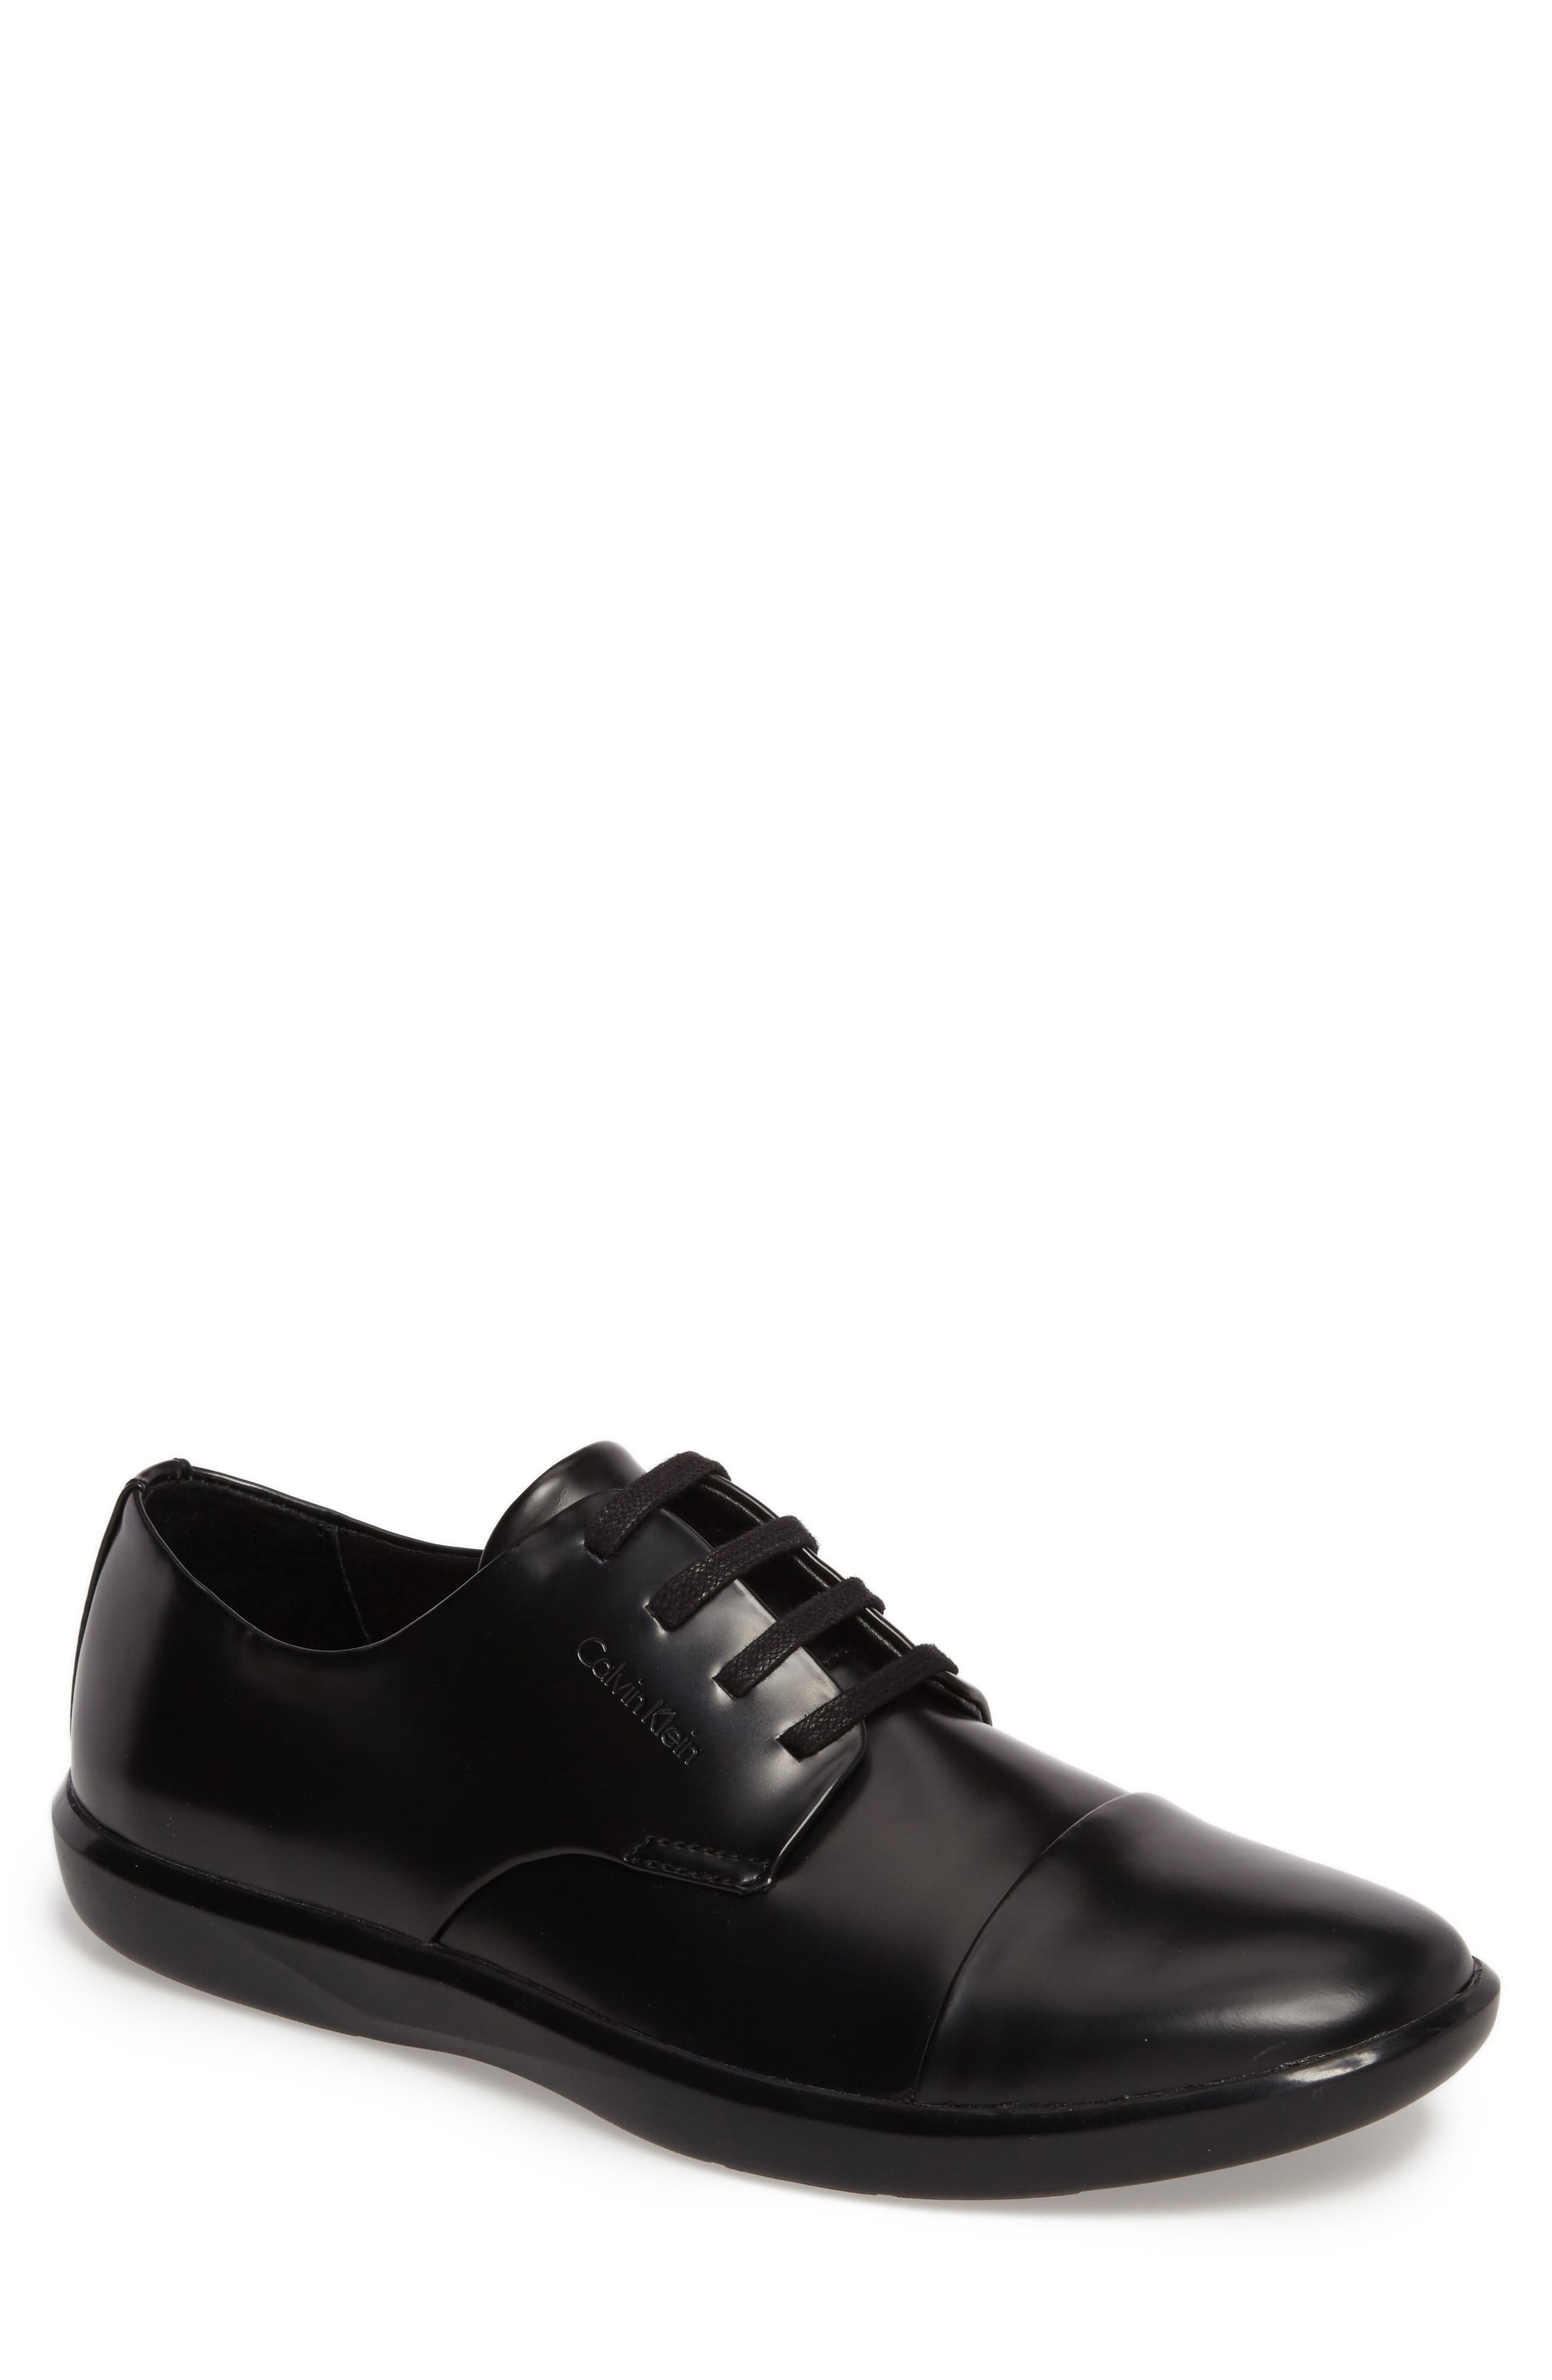 Alternate Image 1 Selected - Calvin Klein Magnar Cap Toe Derby (Men)